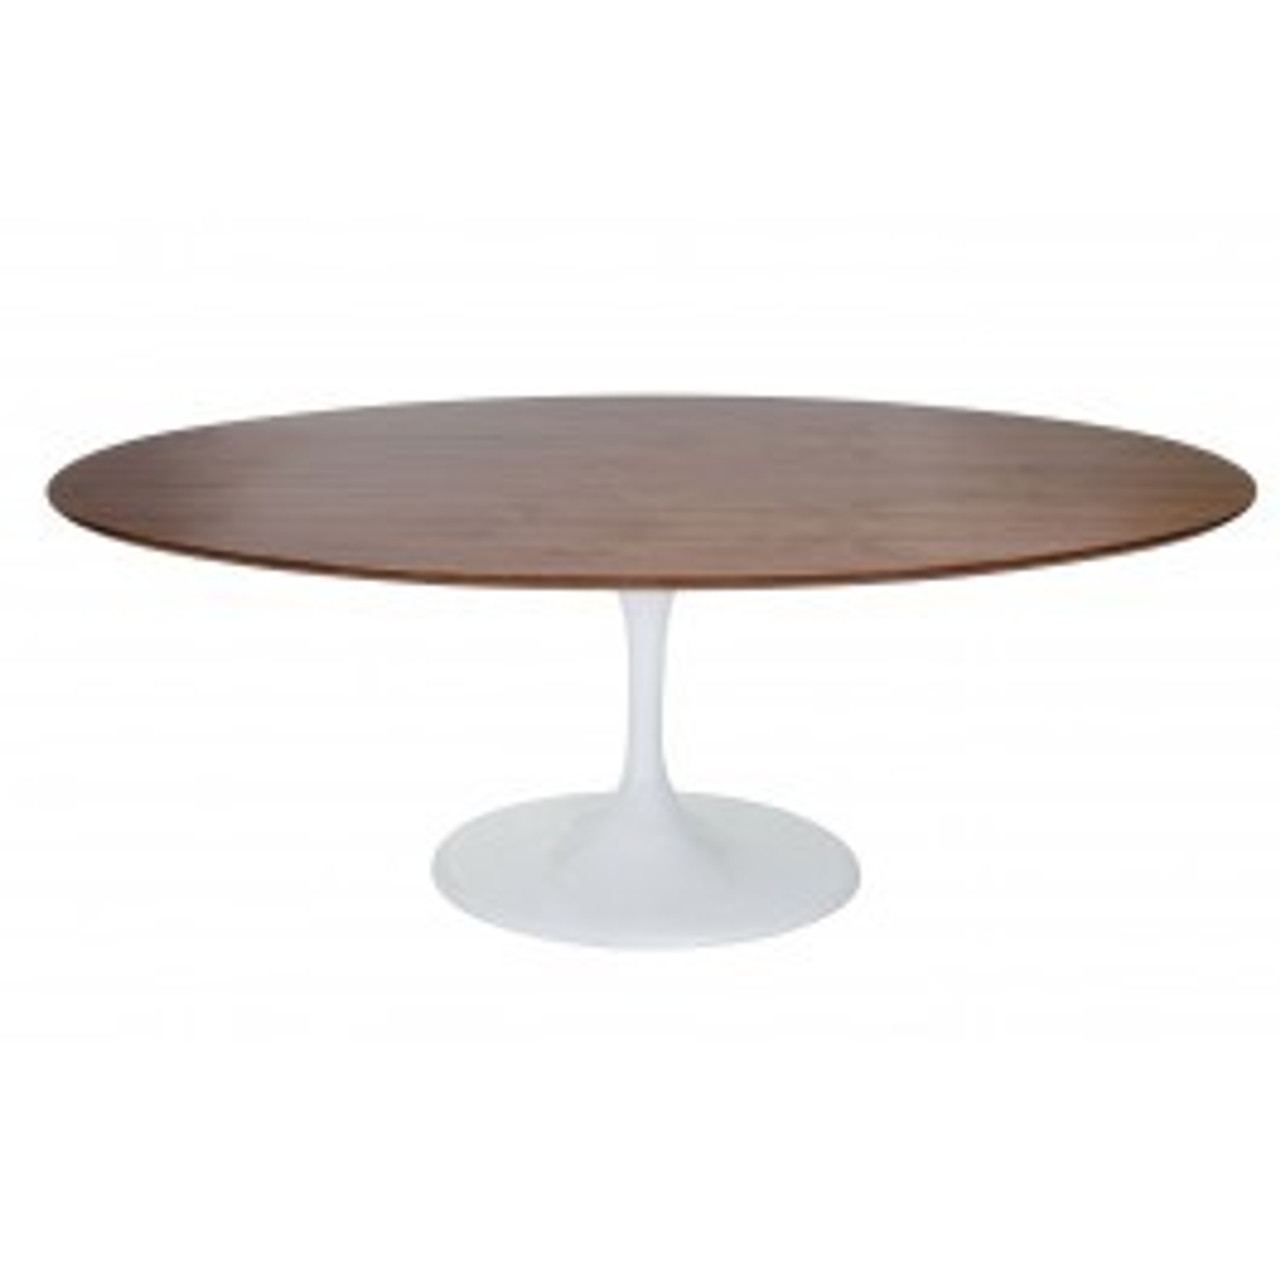 Replica Tulip Oval Dining Table Wood Top 160 To 200cm Tulip